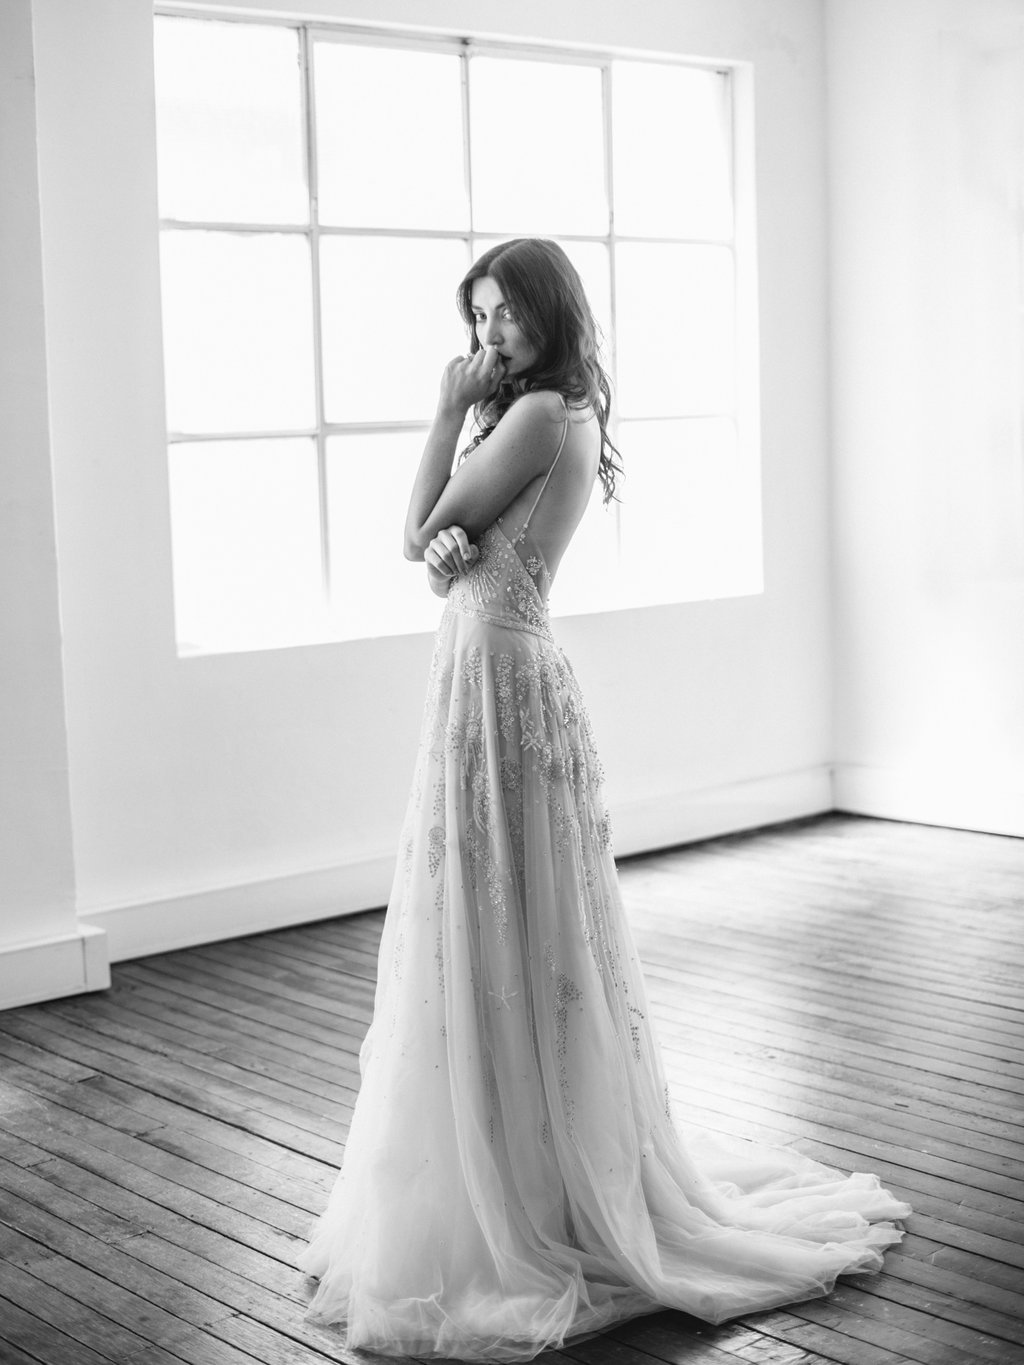 Embellished wedding dress featured in the first editorial by LOVE FIND CO.